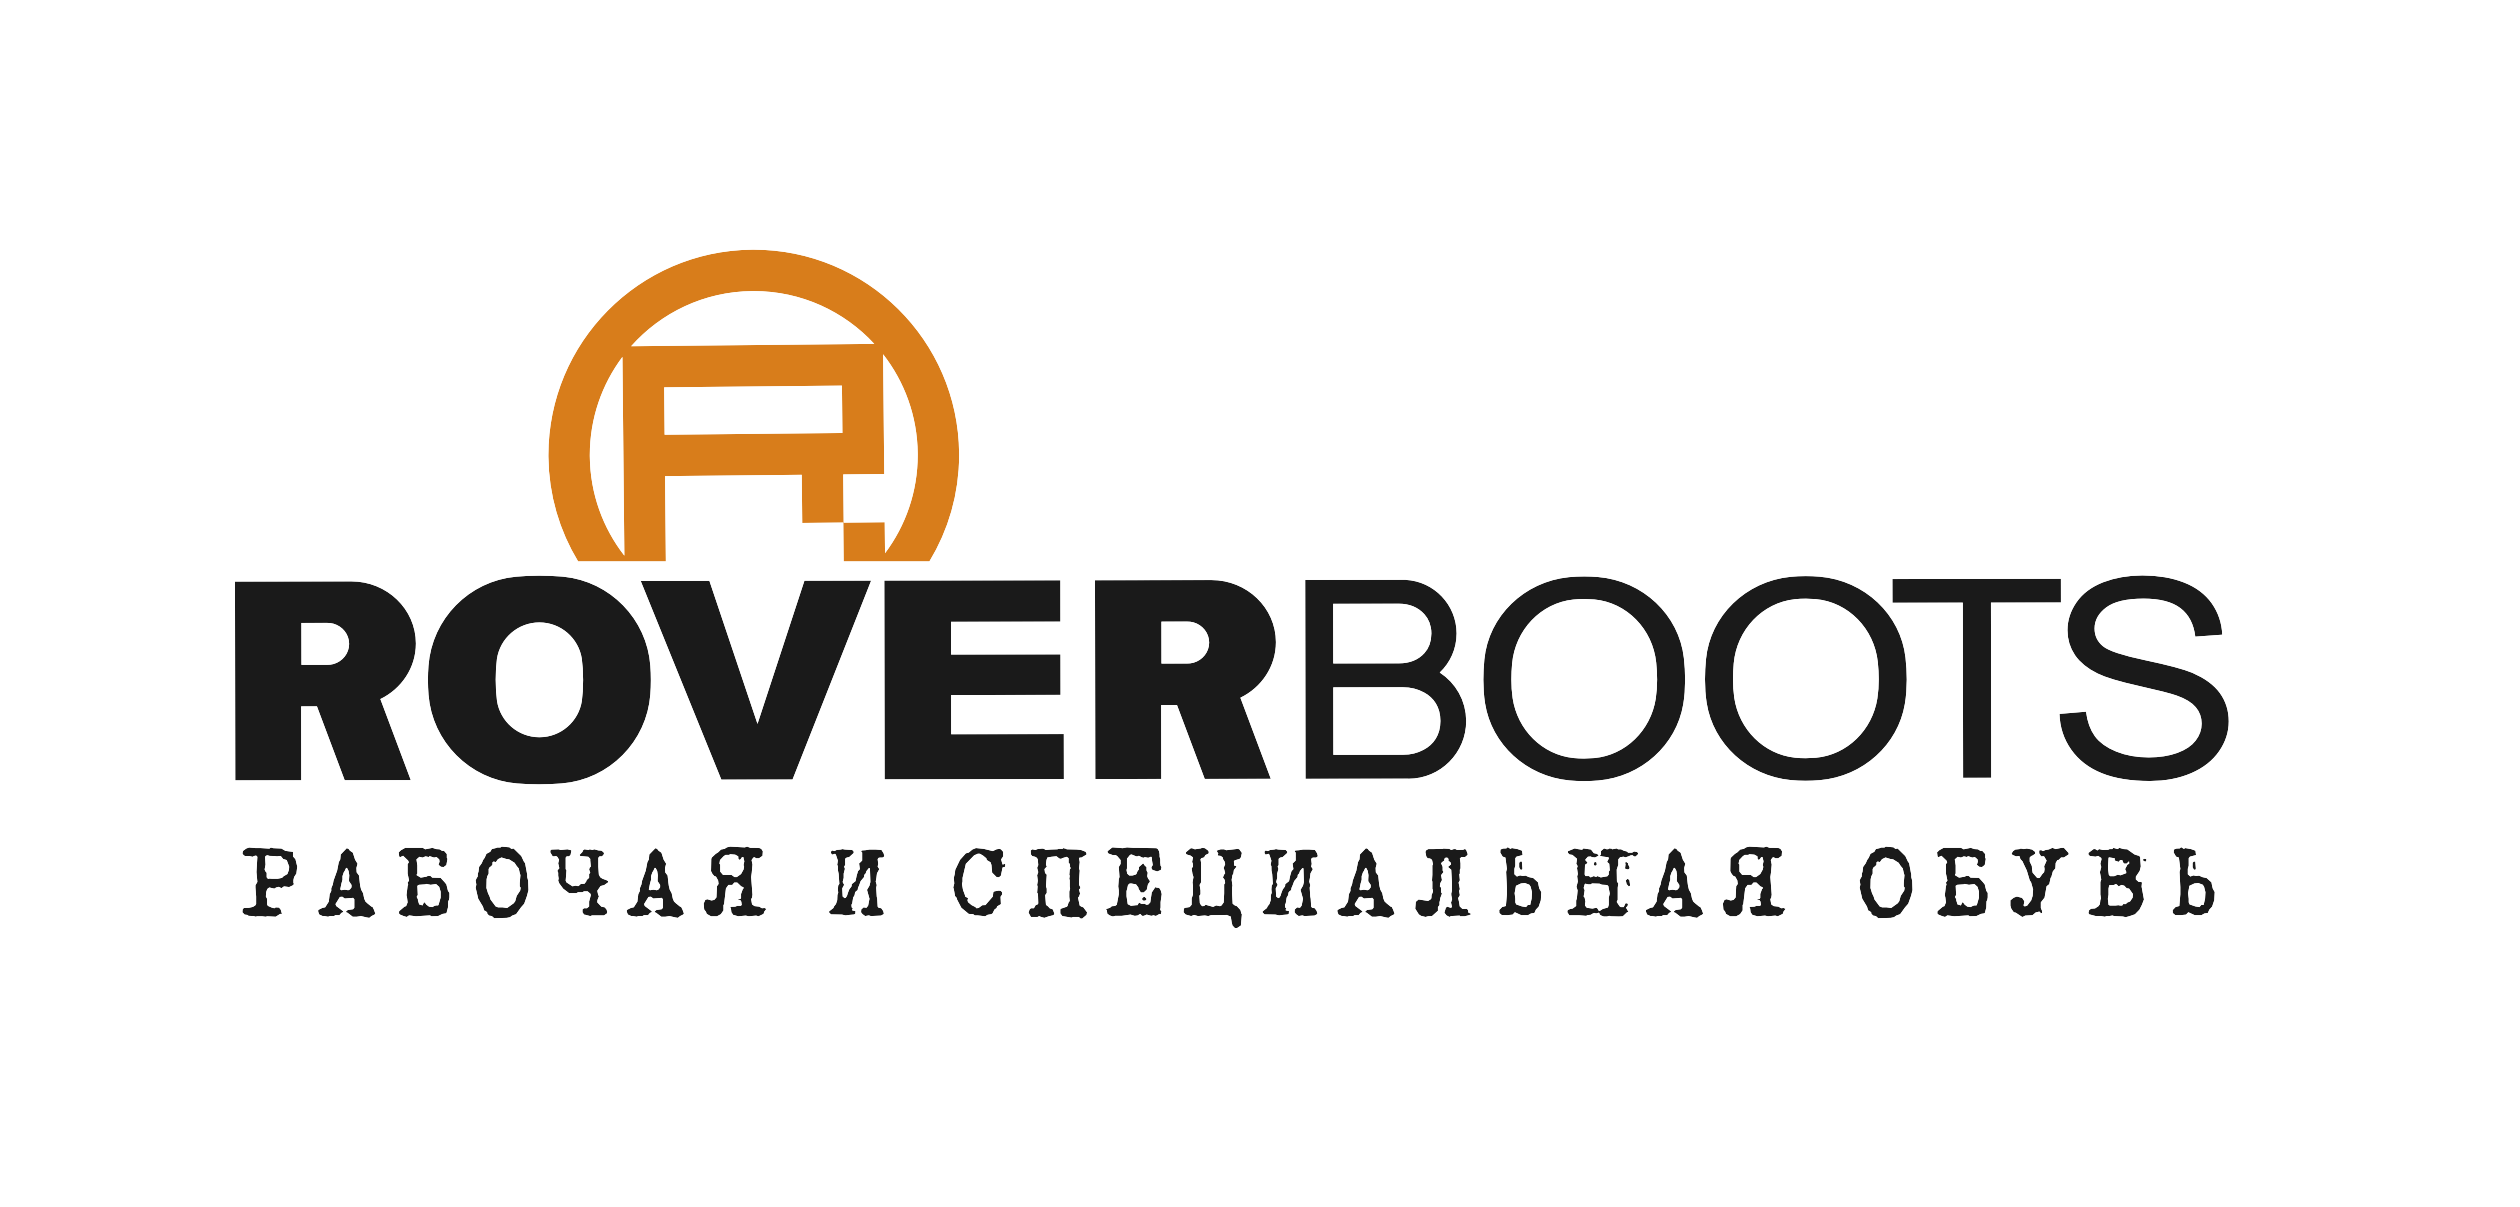 http://www.roverboots.com/